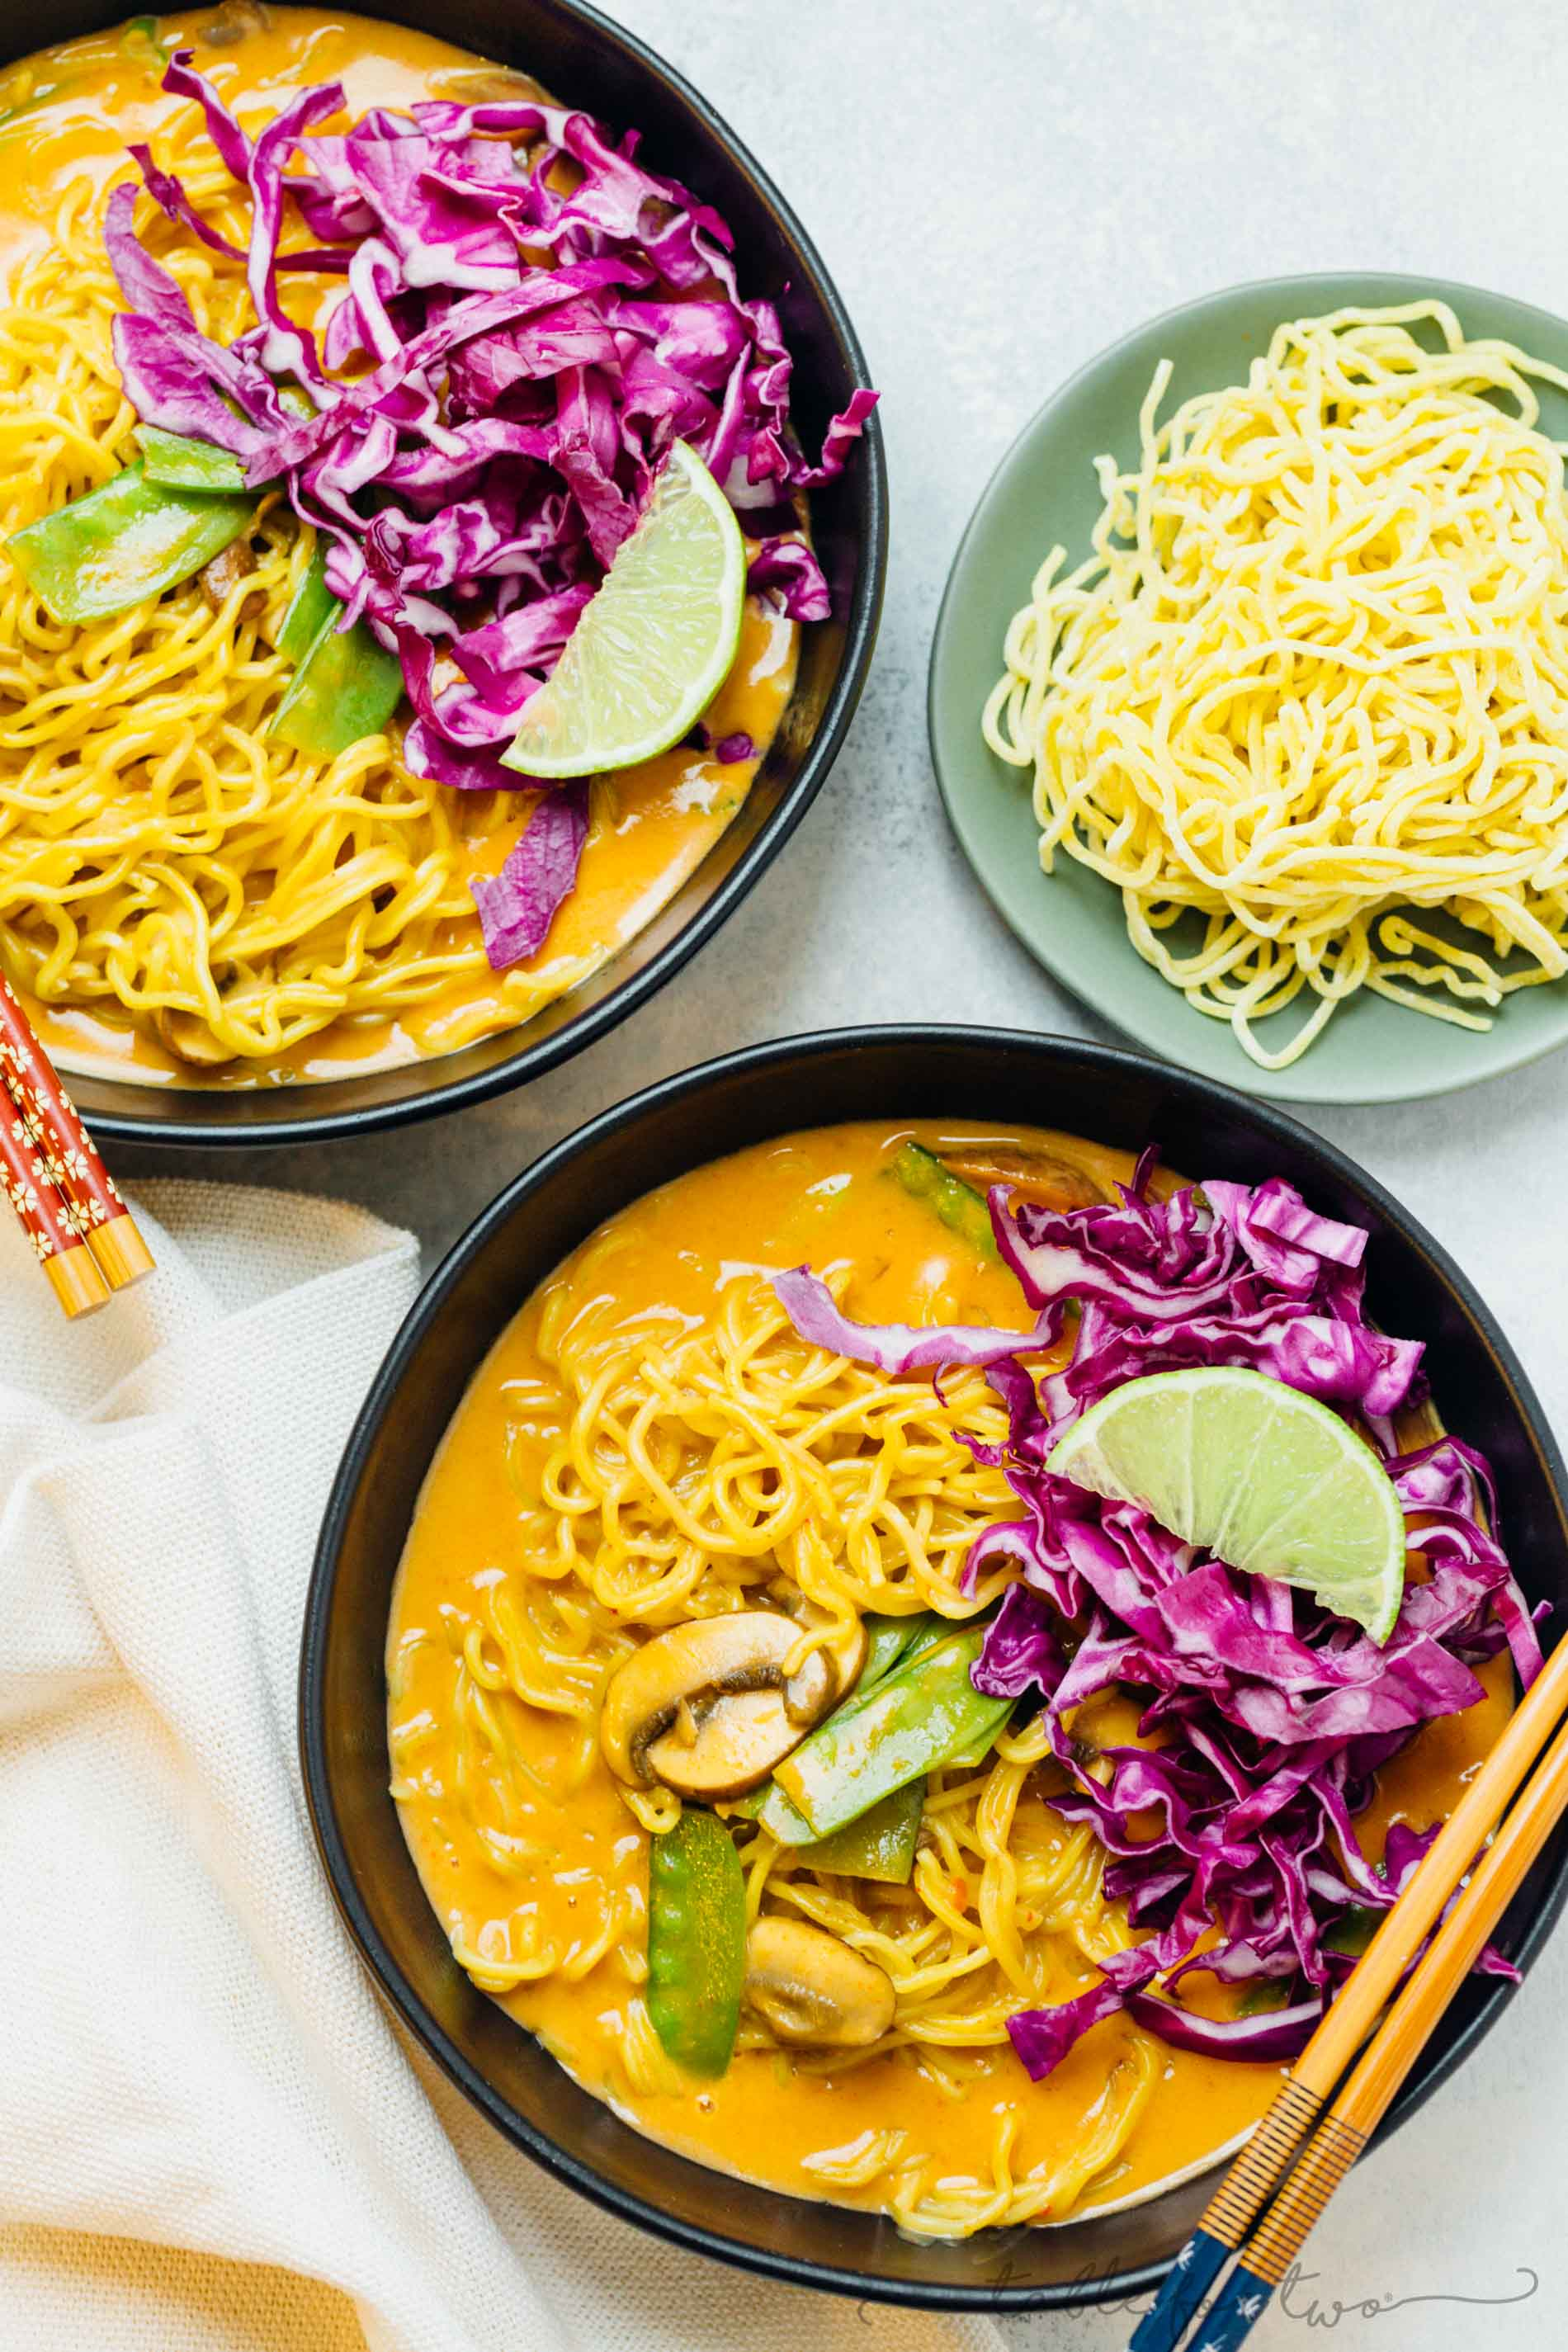 This coconut curry ramen will warm you right up! A delicious broth coats the tender ramen noodles. You will want to slurp up every last drop of this soup and ramen!